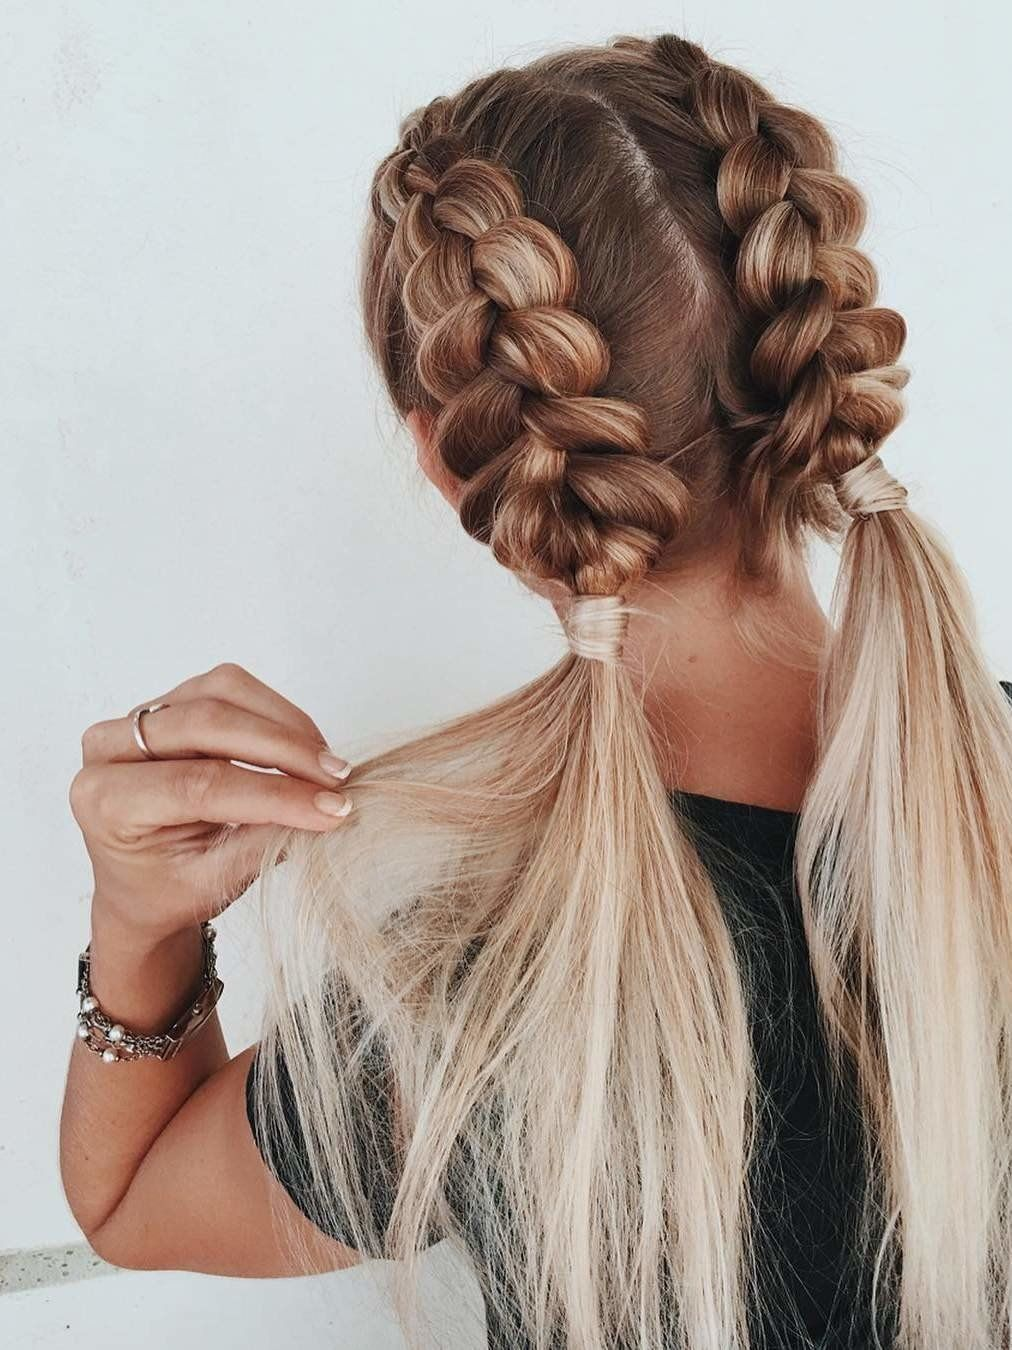 7 Braided Hairstyles That People Are Loving On Pinterest Hair Styles Braided Hairstyles Easy Cool Braid Hairstyles